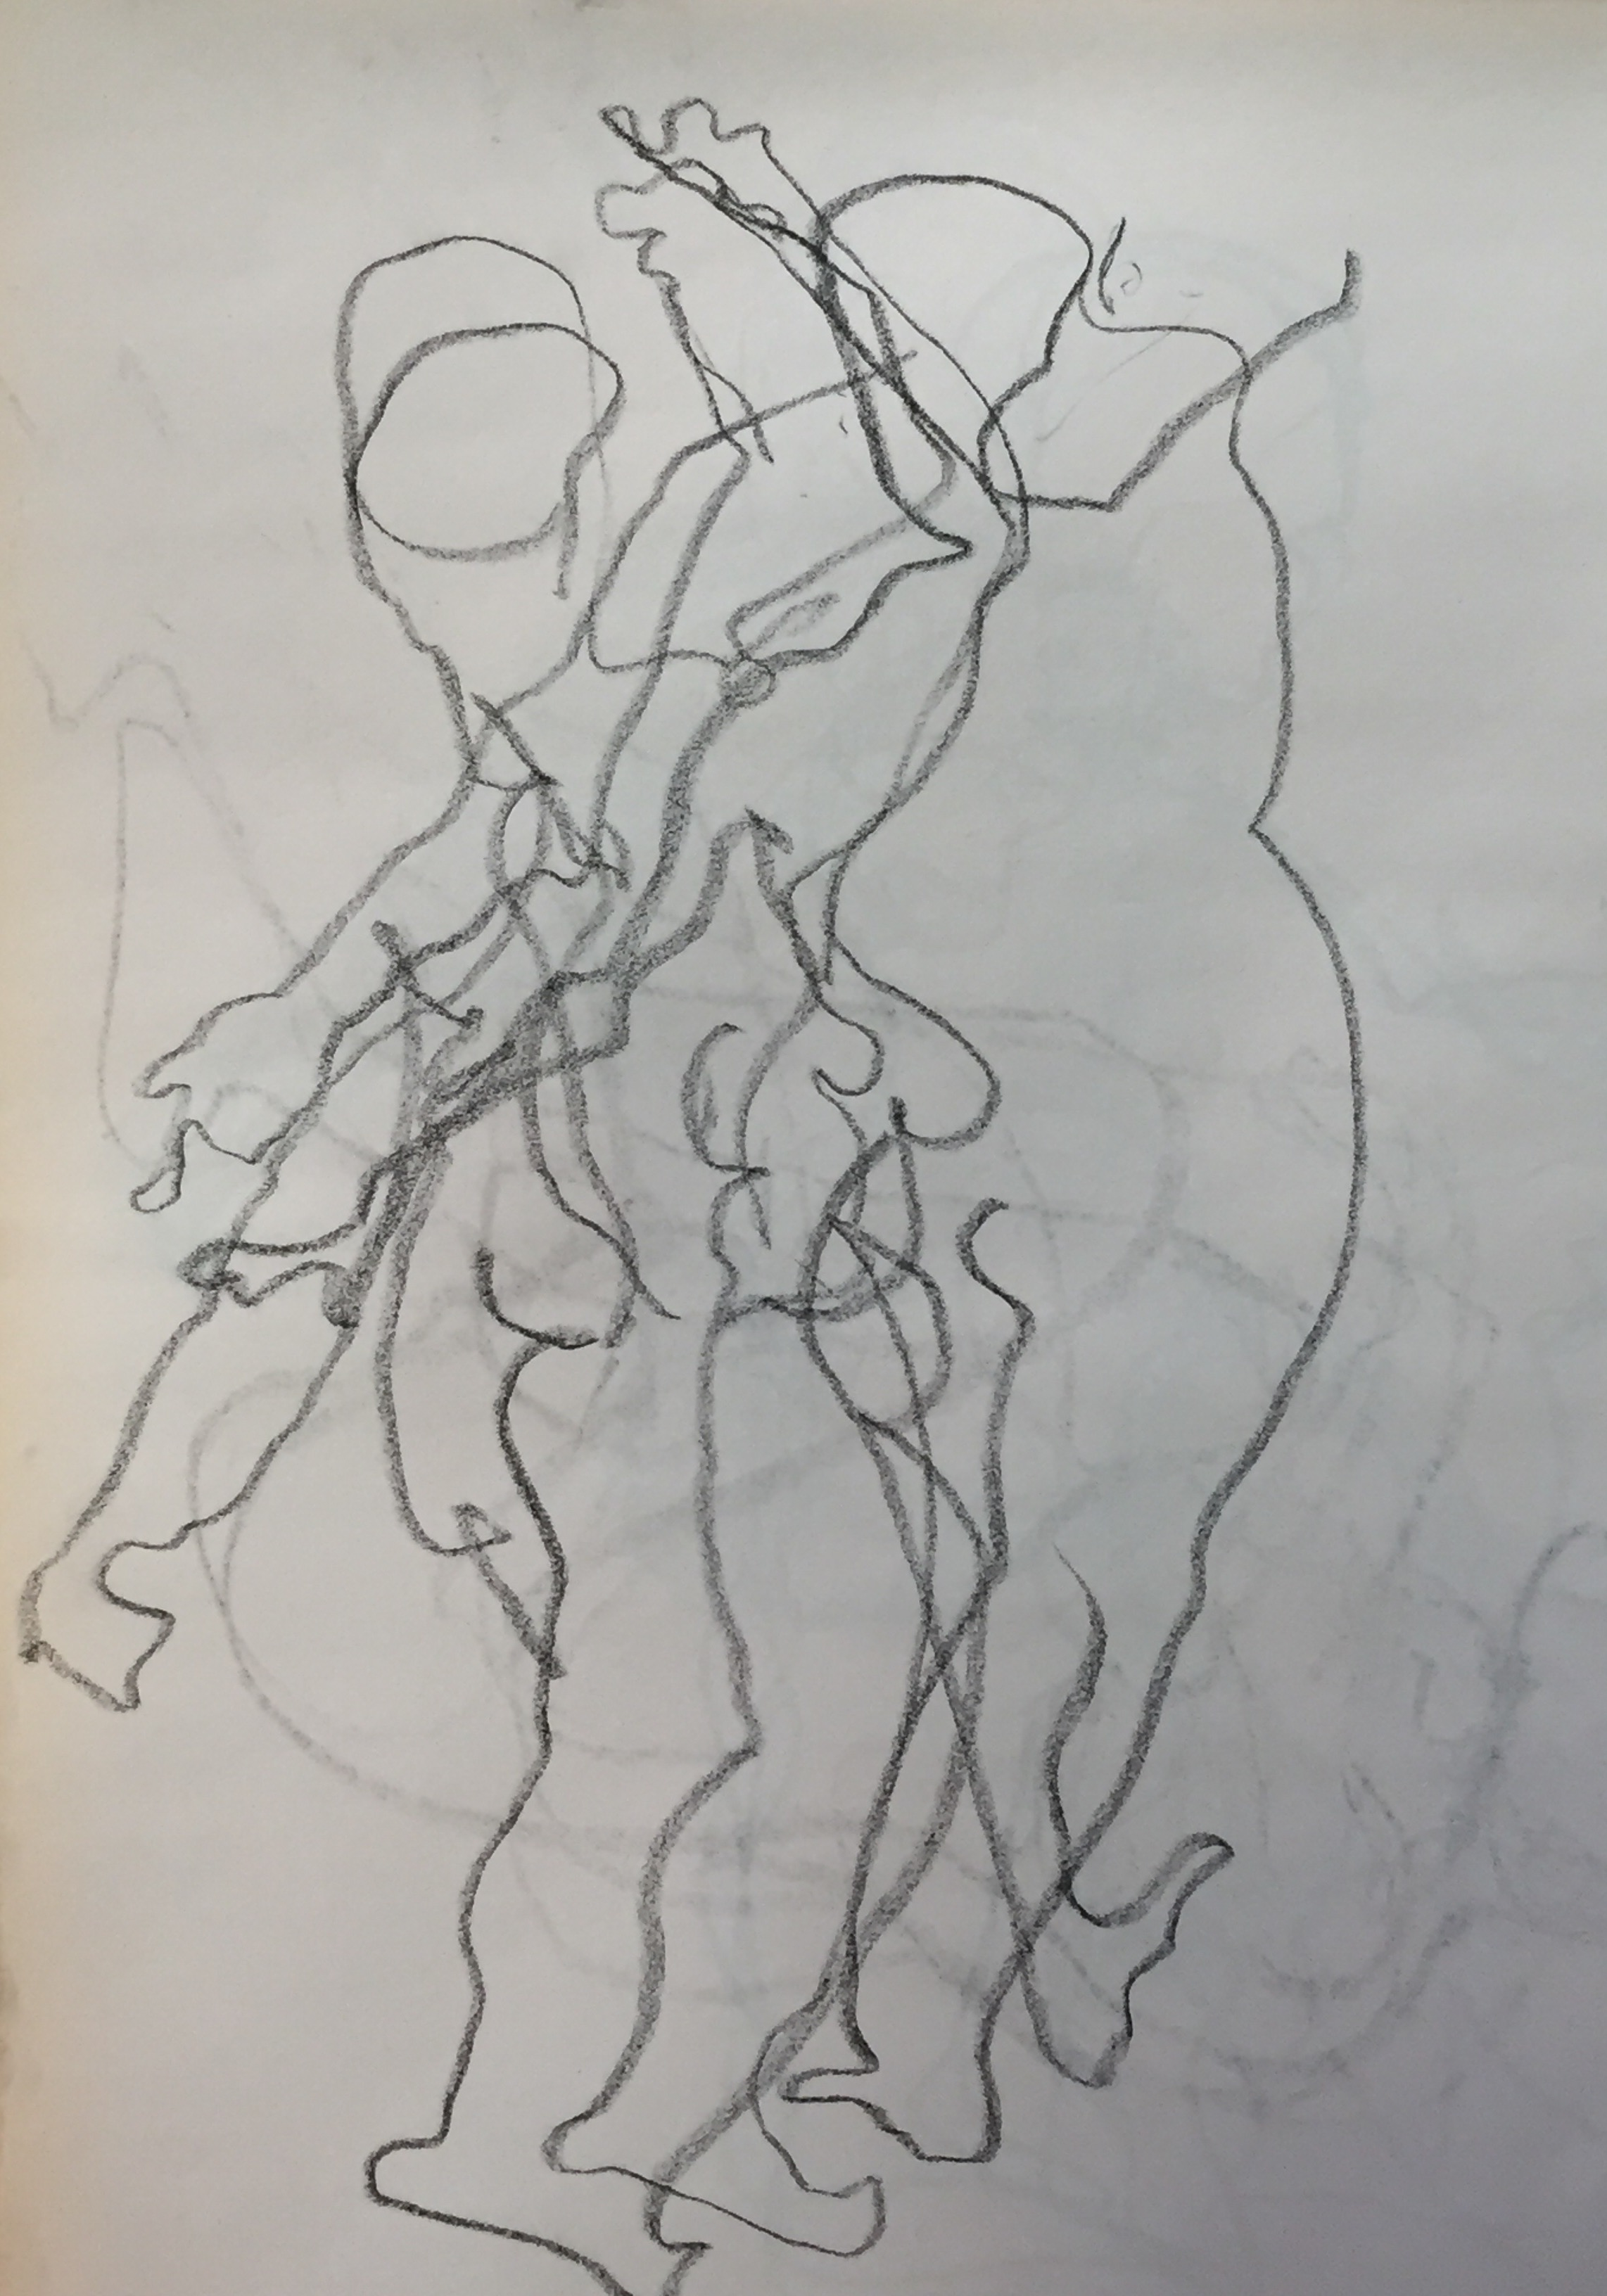 Blind Drawing-Twisting Figure